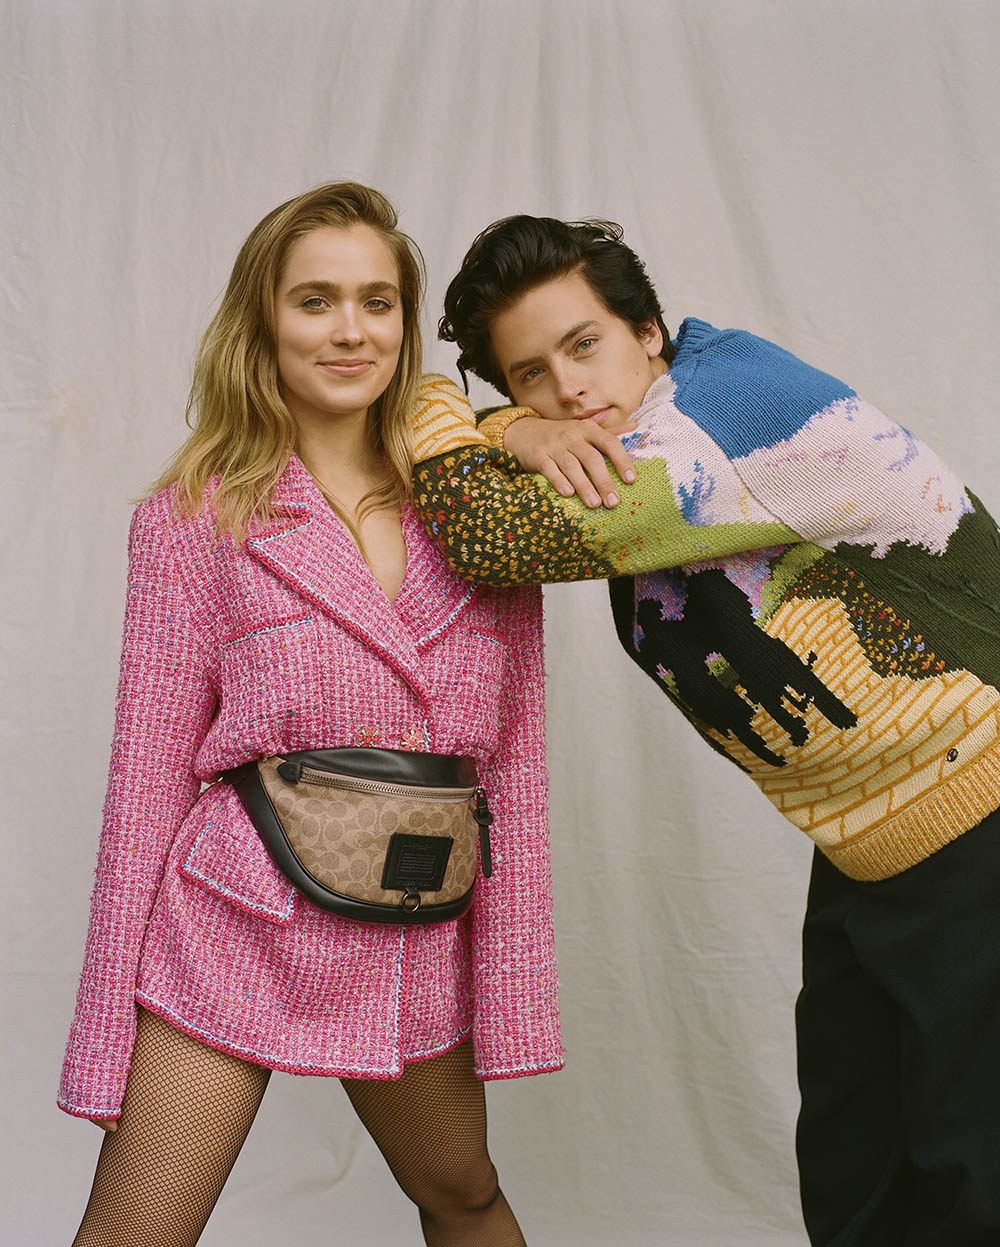 Cole Sprouse and Haley Lu Richardson cover Wonderland Magazine Spring 2019 by Emma Montalvan